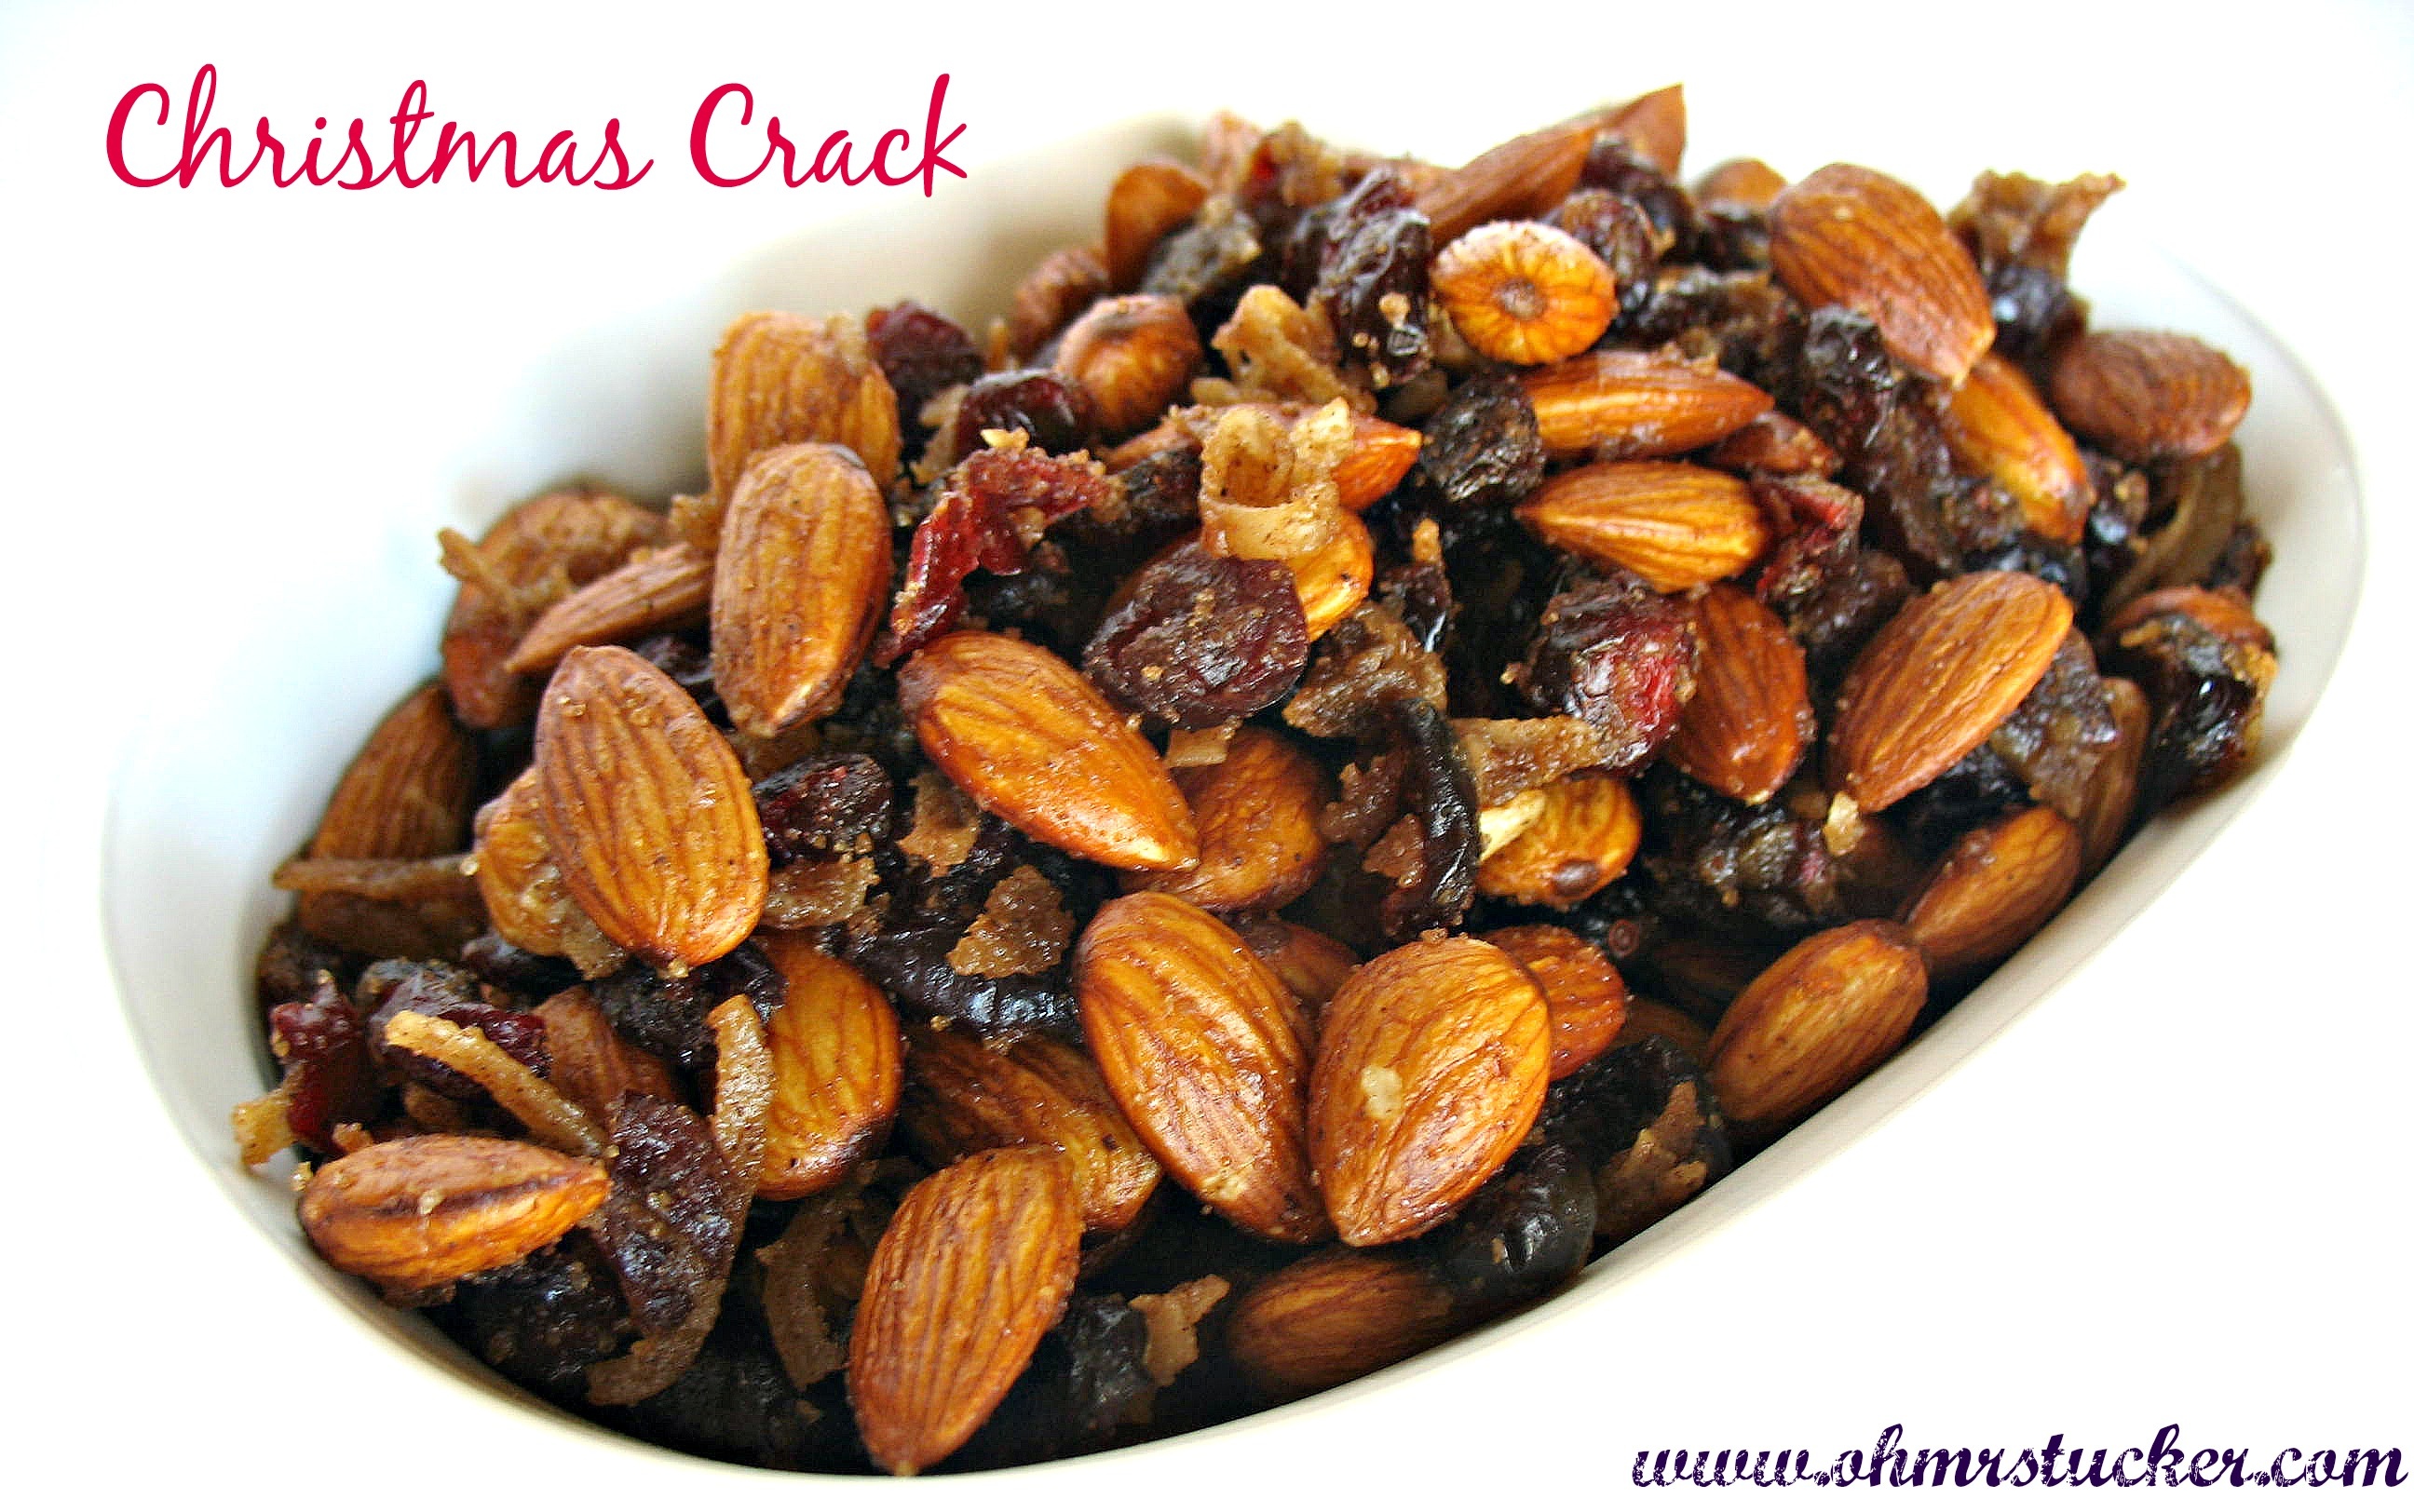 Need More Christmas Crack in Your Life?